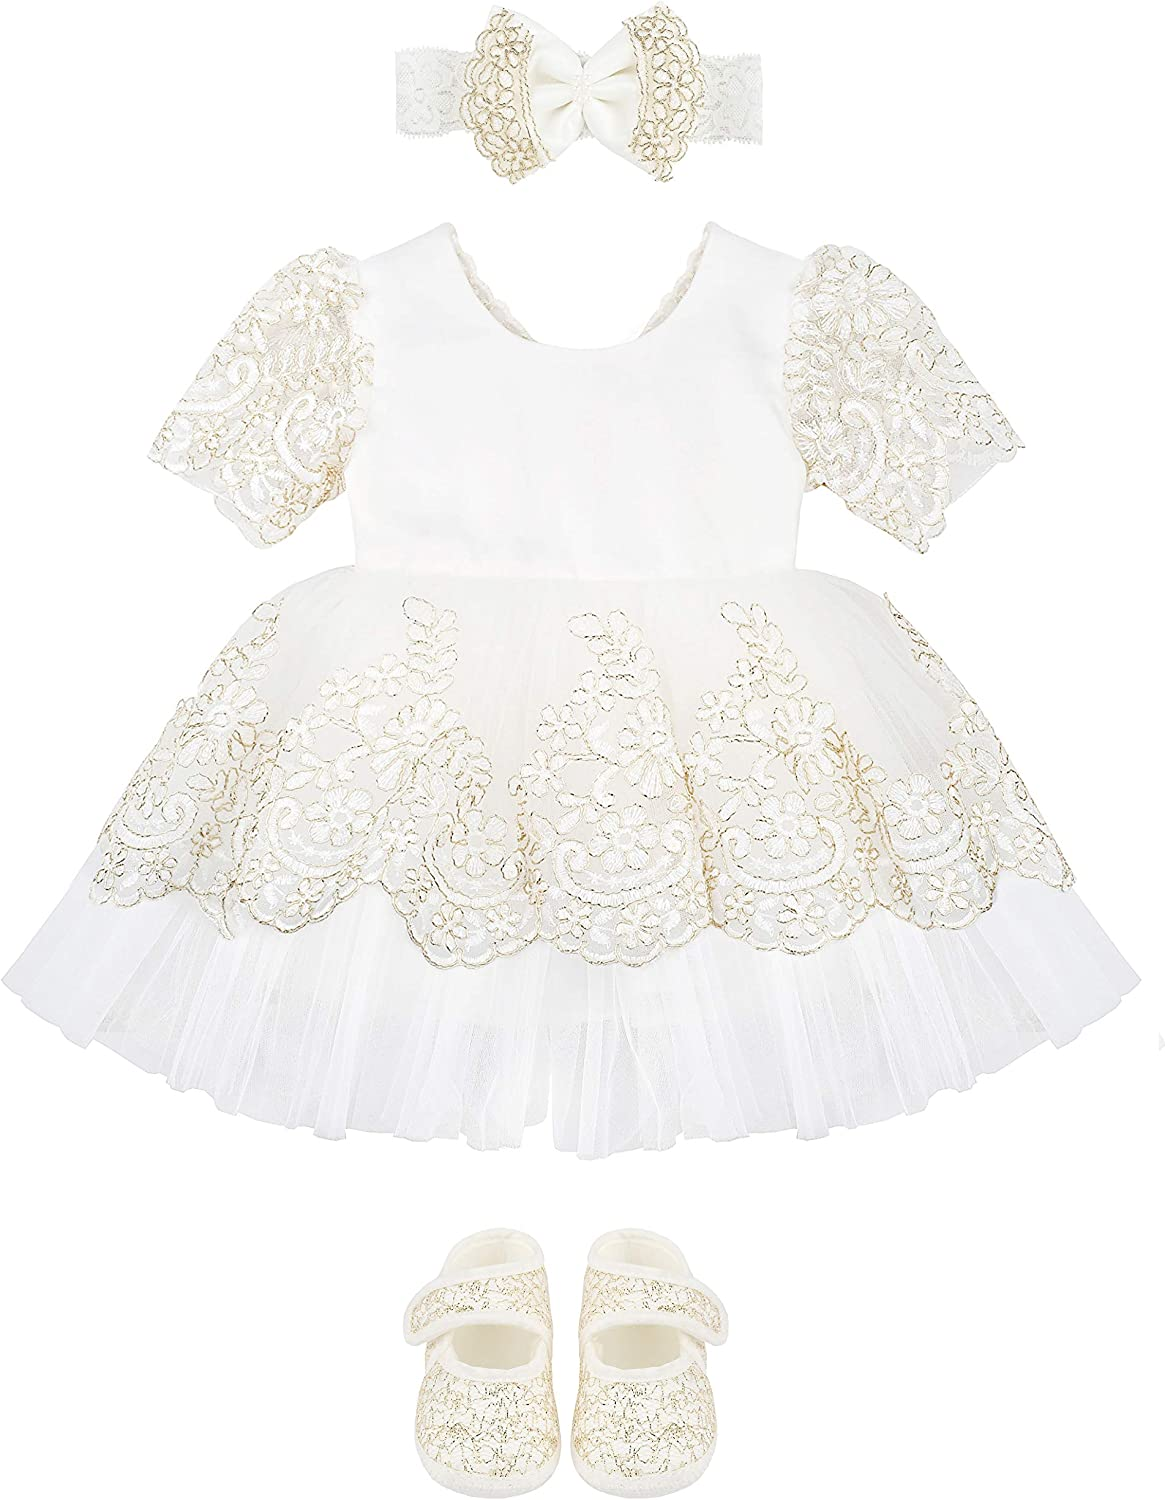 Lilax Baby Girl Lace Princess Wedding Party Short Sleeve Dress Gown 4 Piece Deluxe Set